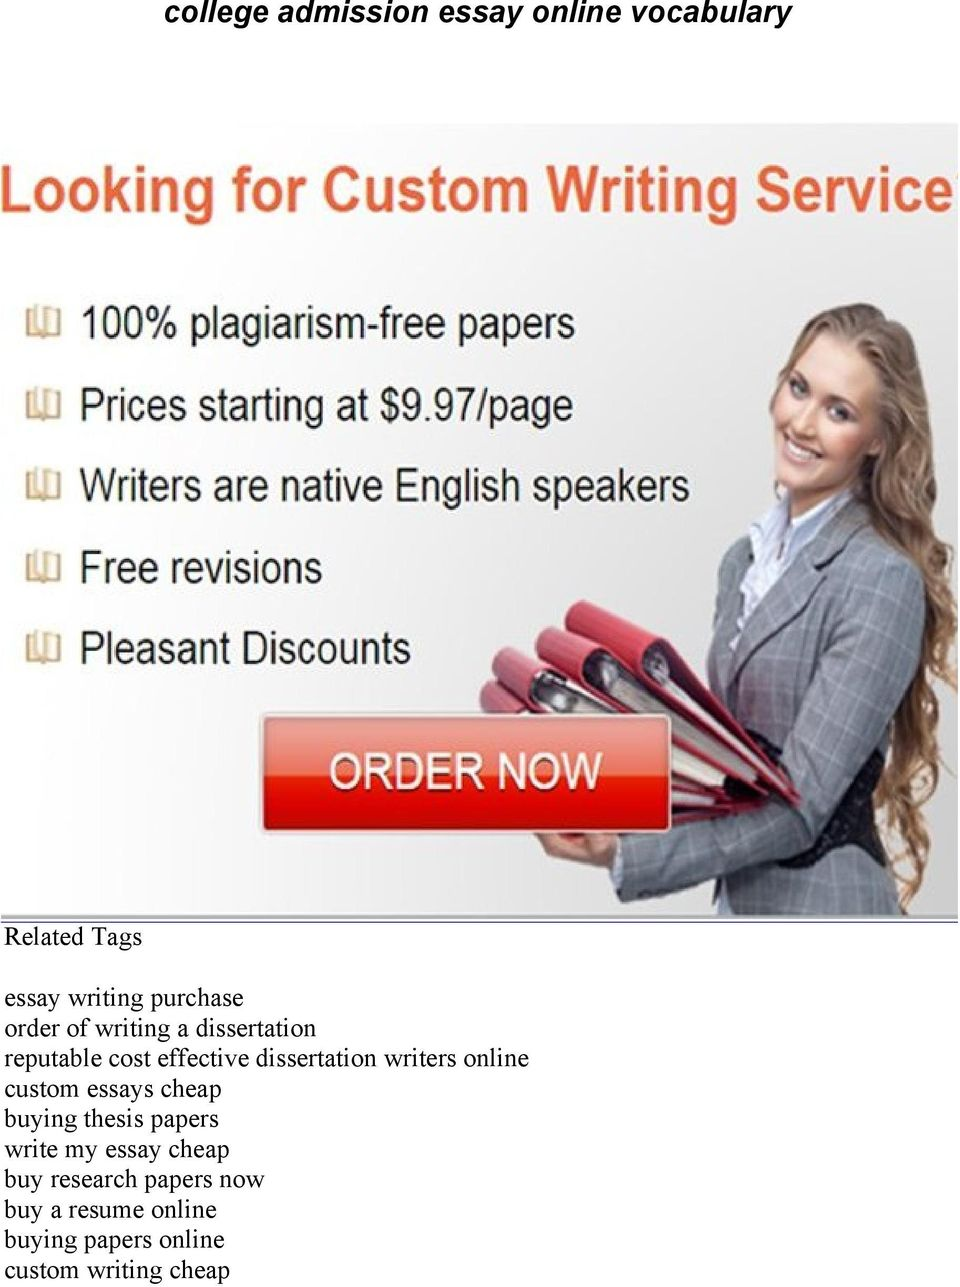 online custom essays cheap buying thesis papers write my essay cheap buy